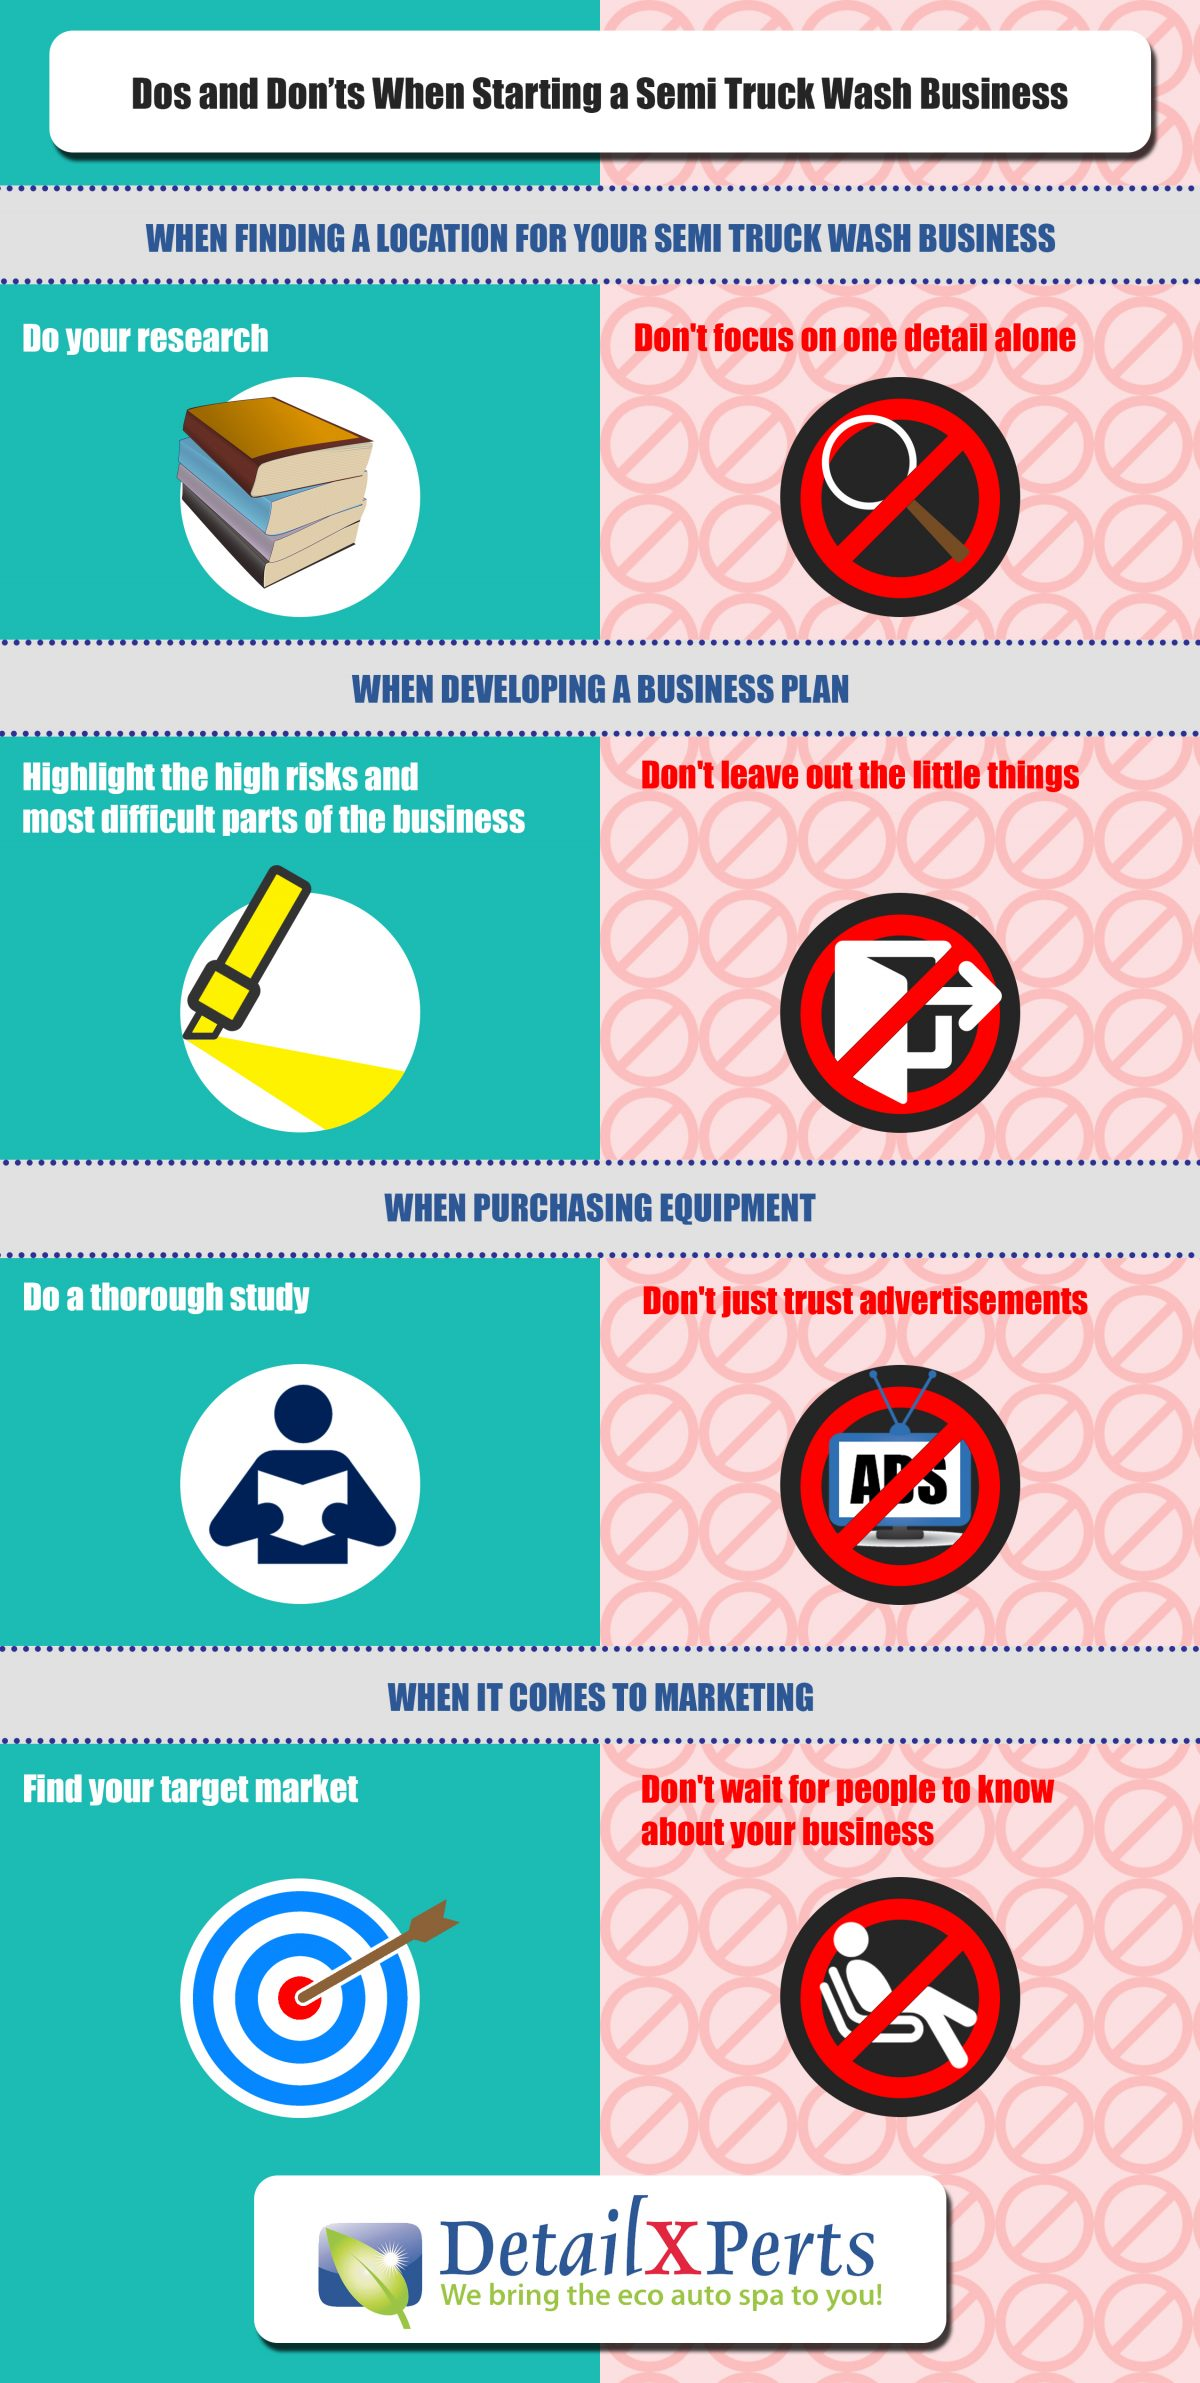 Dos and Don'ts When Starting a Semi Truck Wash Business (Infographic)